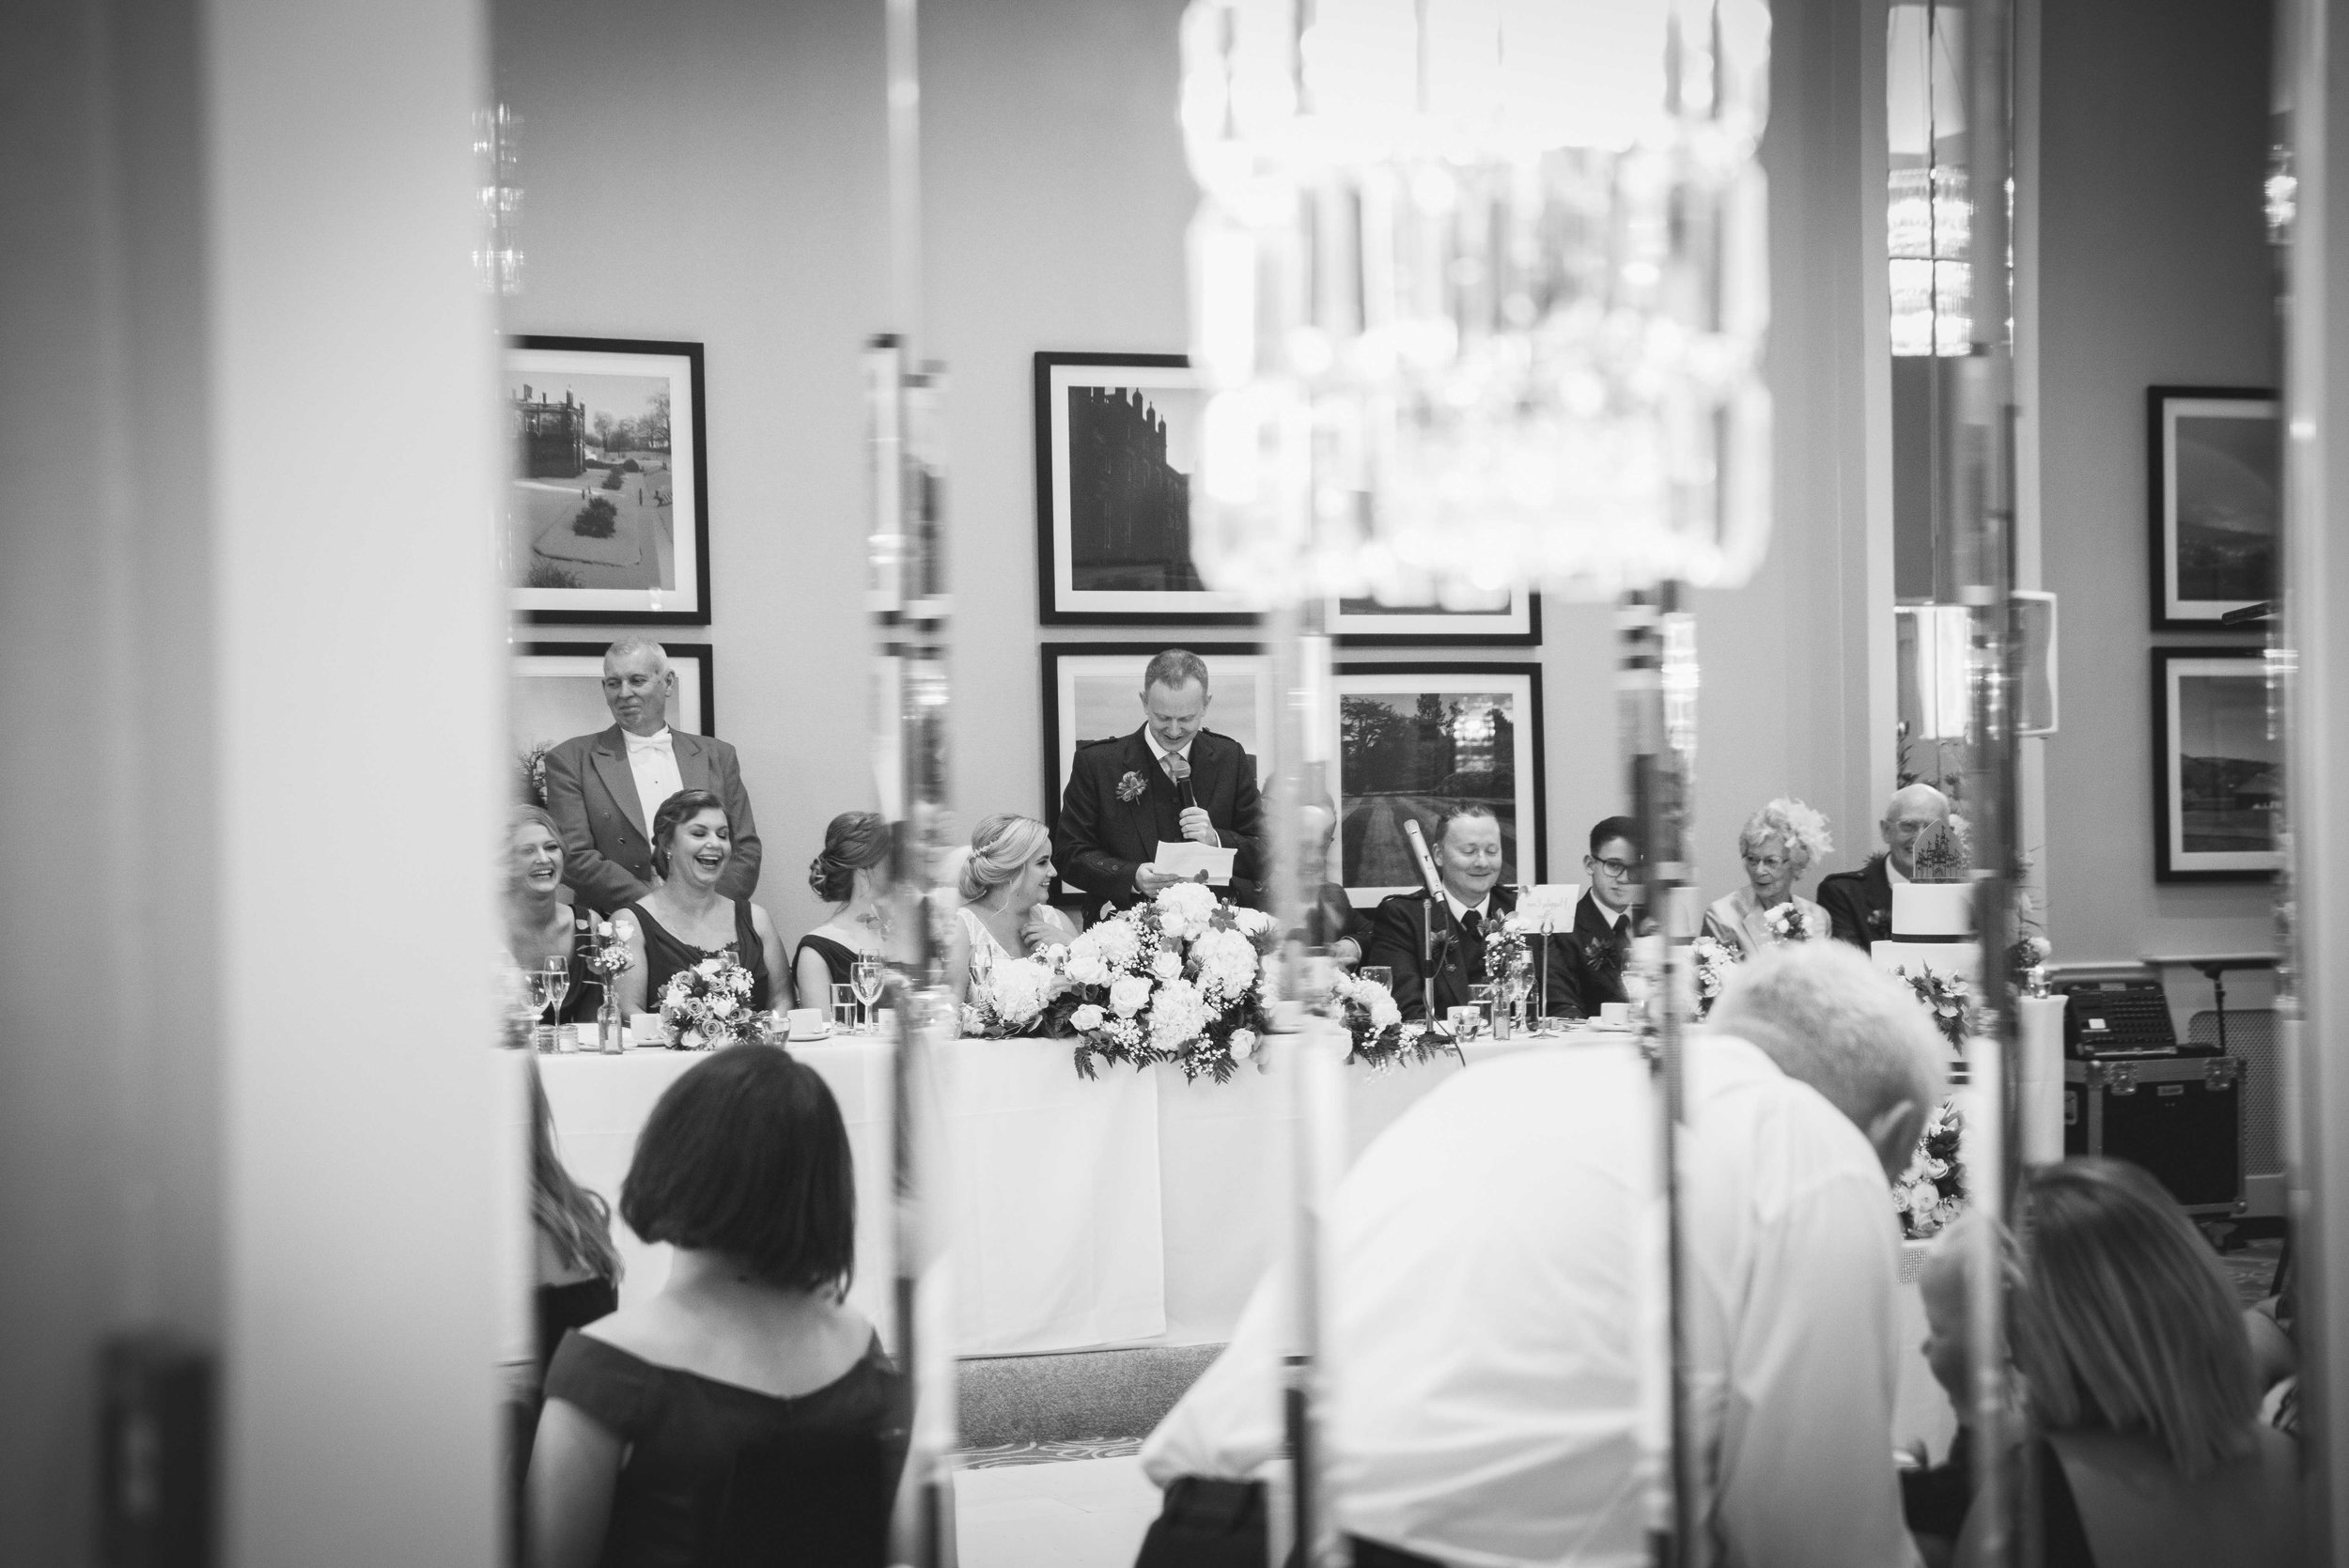 Mar Hall Wedding 2018, Haminsh & Emma McEwan 67.JPG